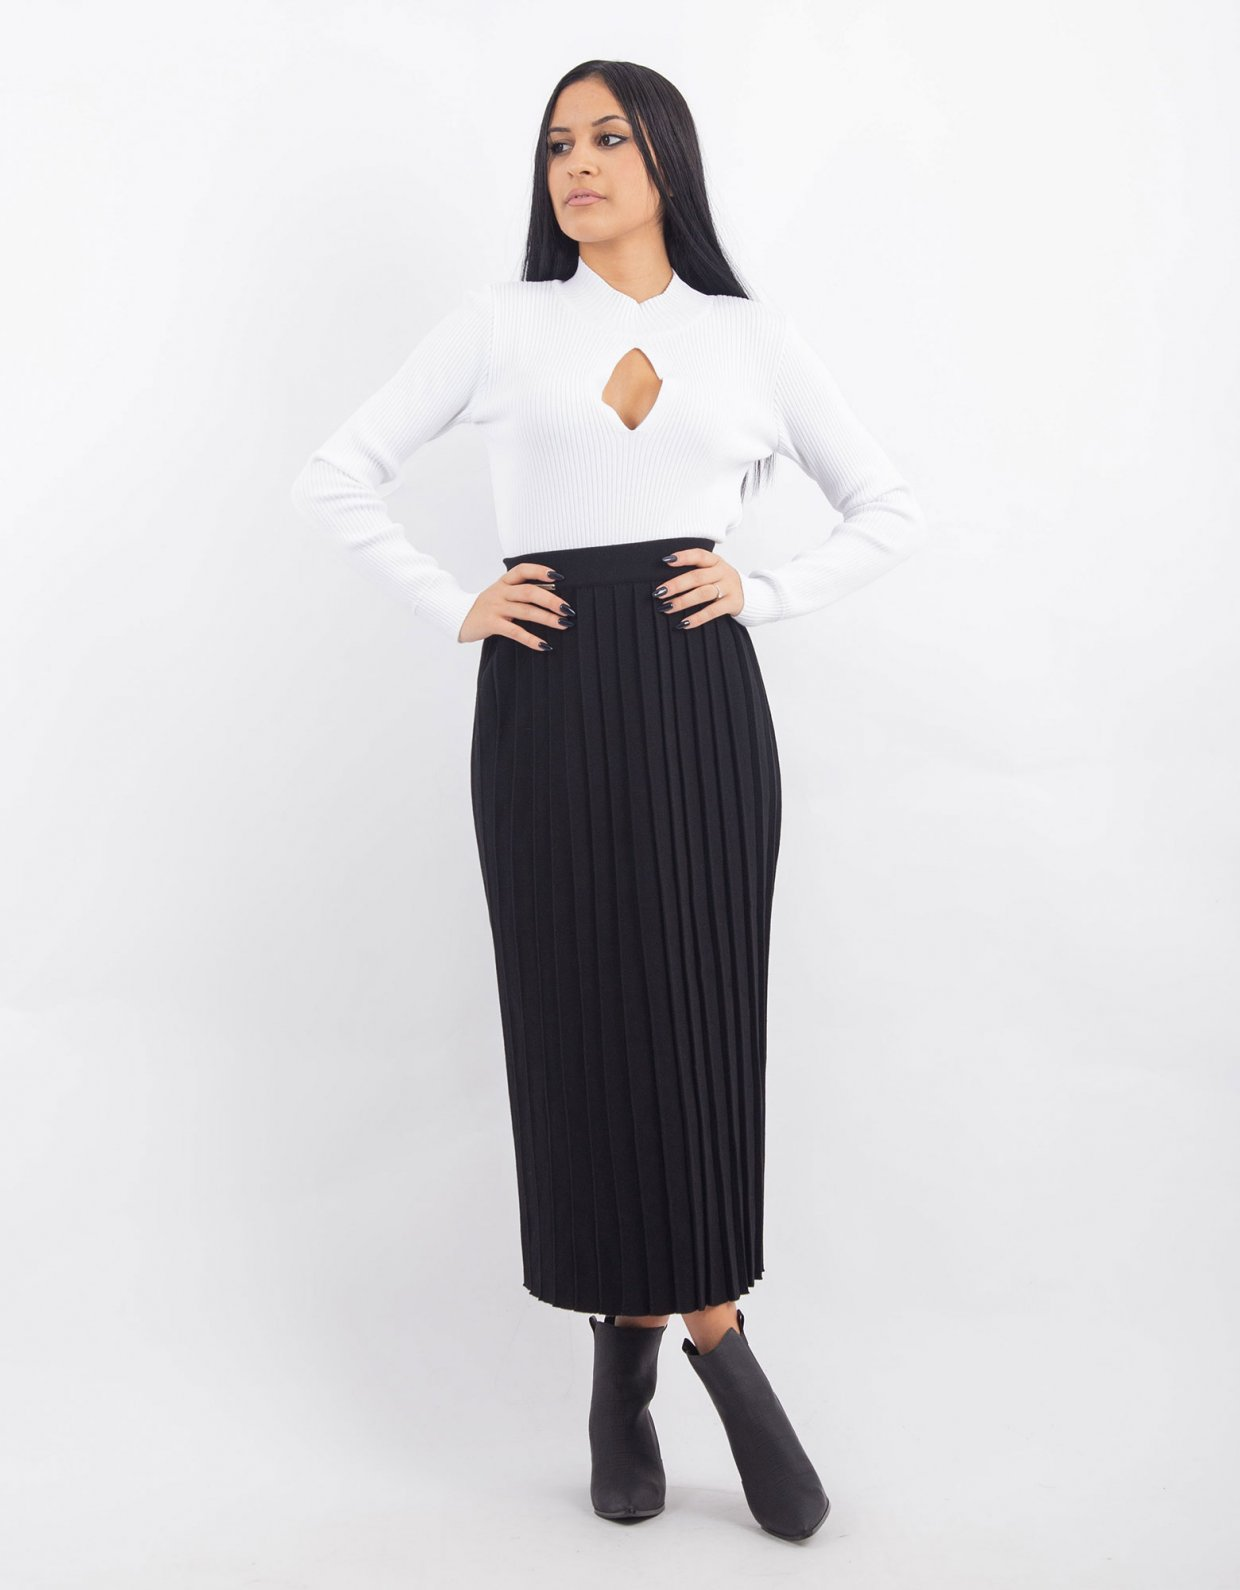 Combos Knitwear Combos W38 – Black pleated skirt